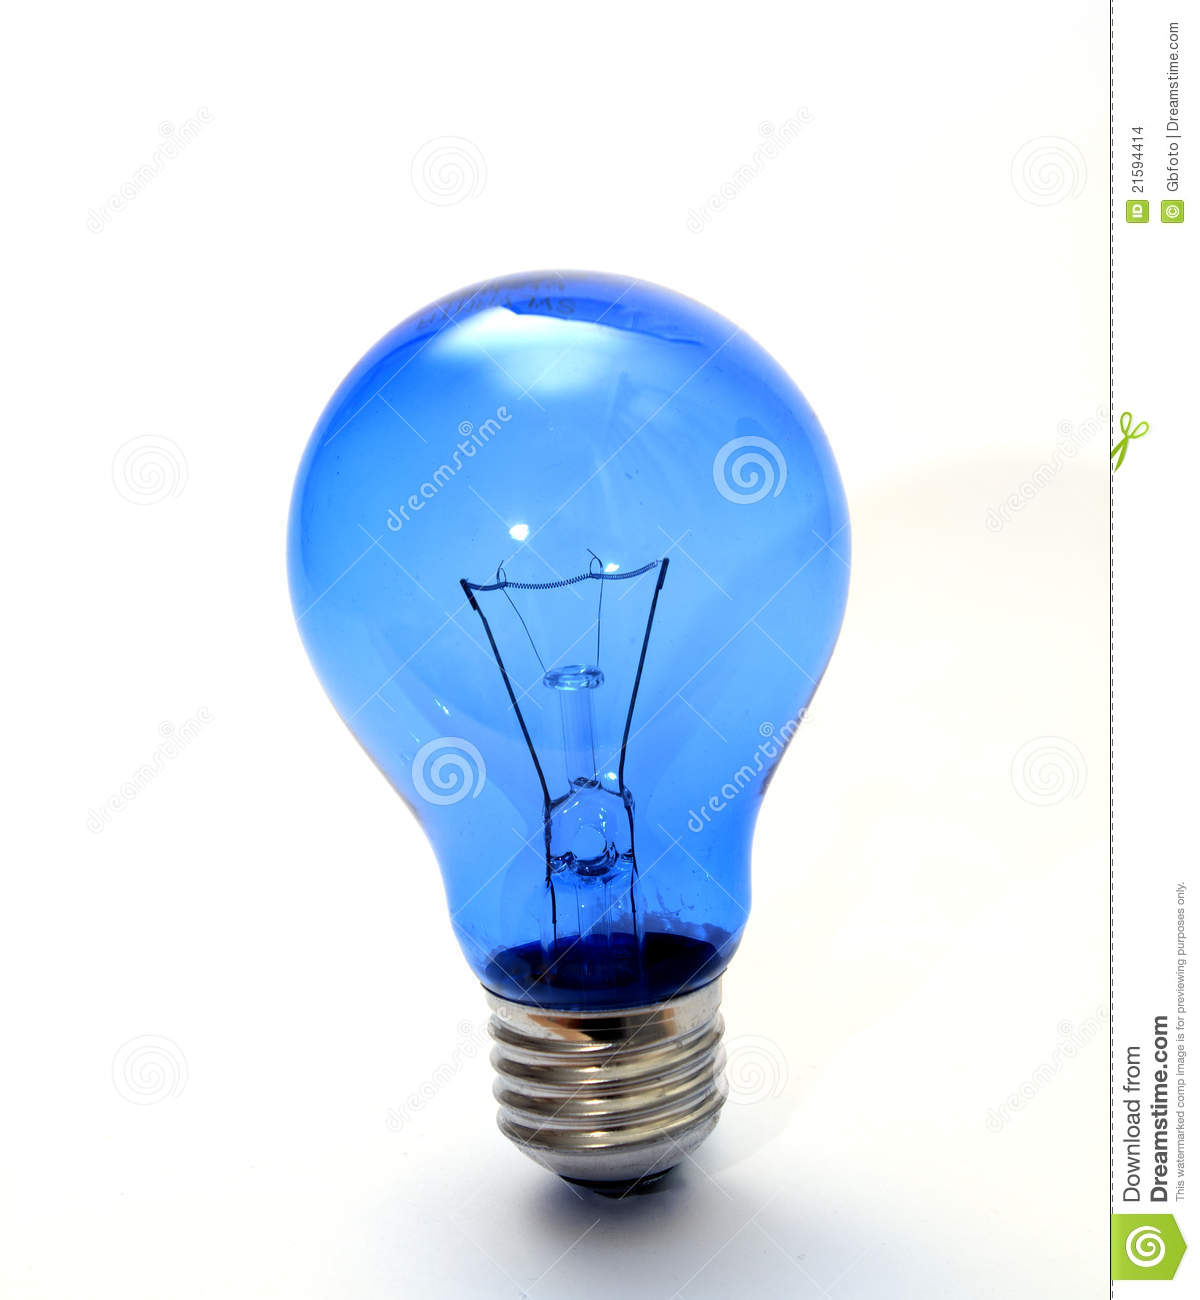 Daylight bulb stock photo. Image of glowing, brilliant ...